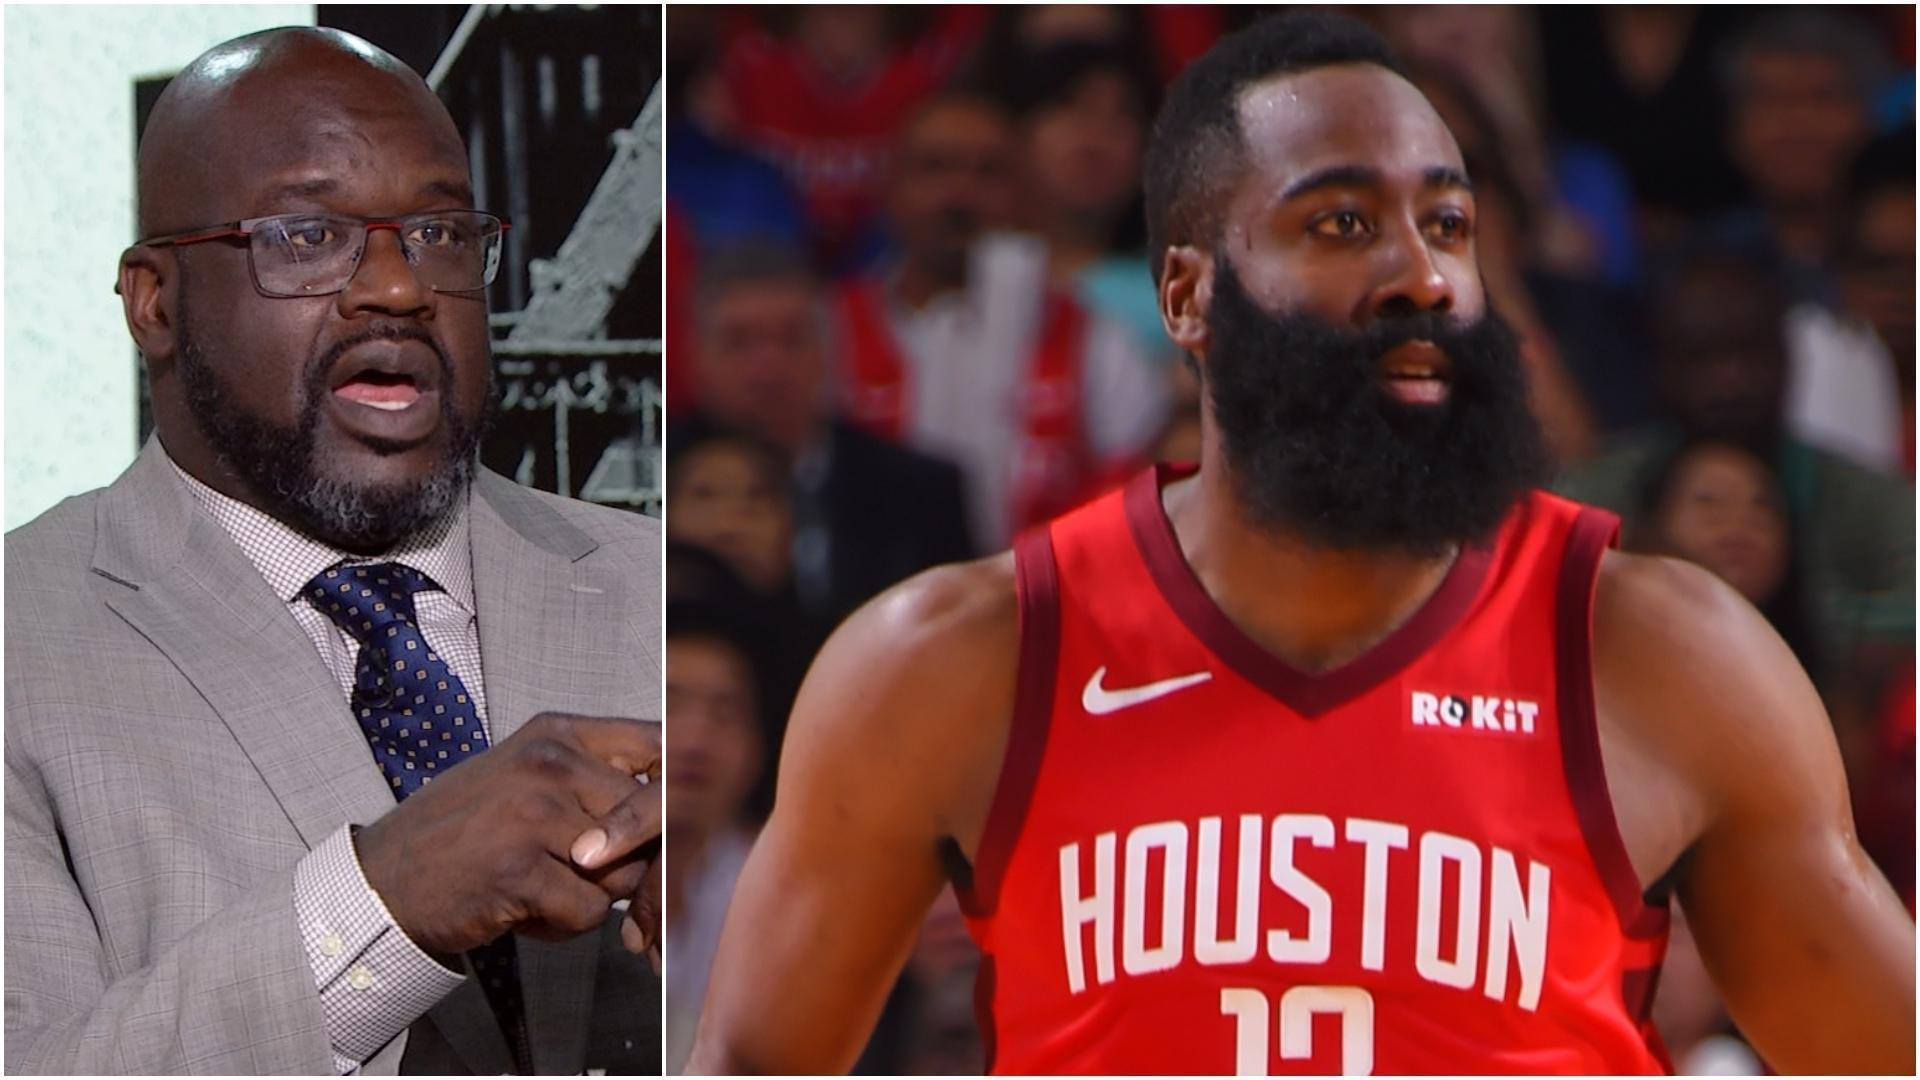 Shaq: Tension between Harden and CP3 isn't the Rockets problem